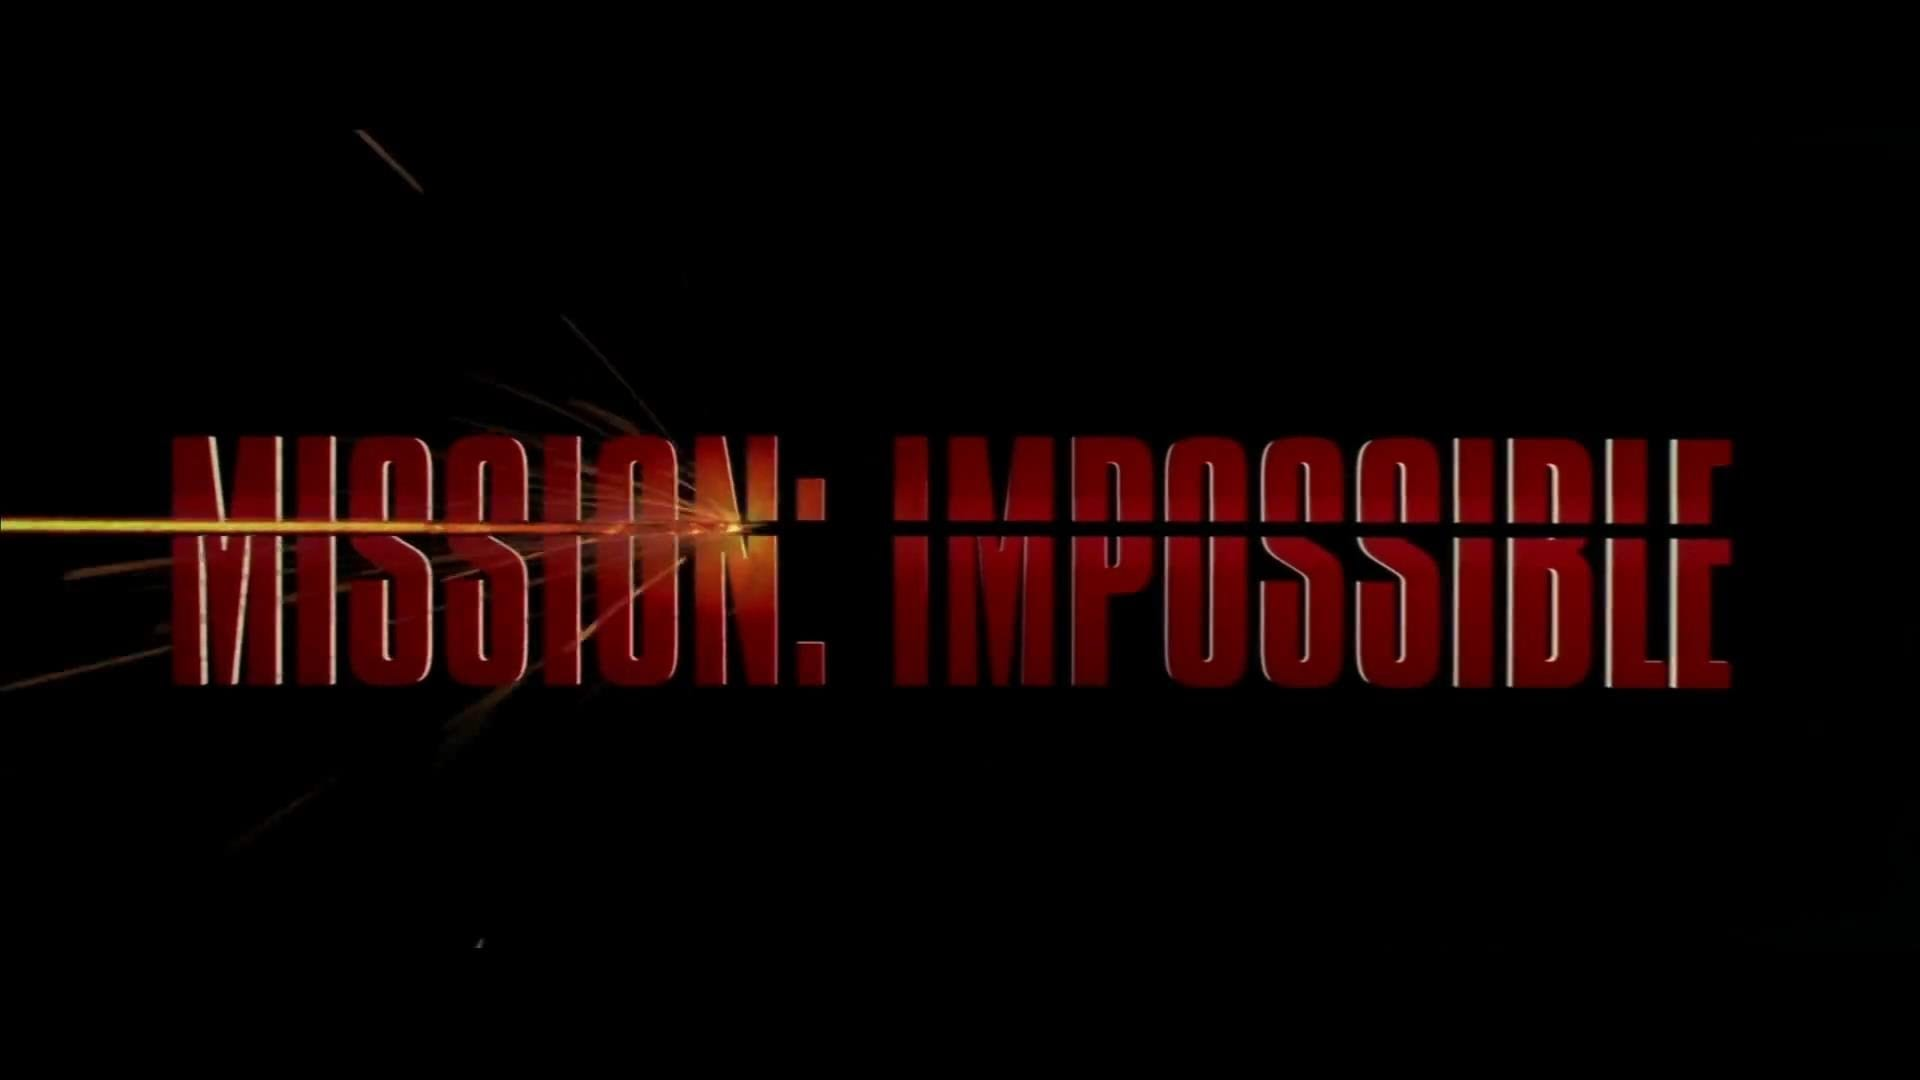 mission-impossible-franchise-main